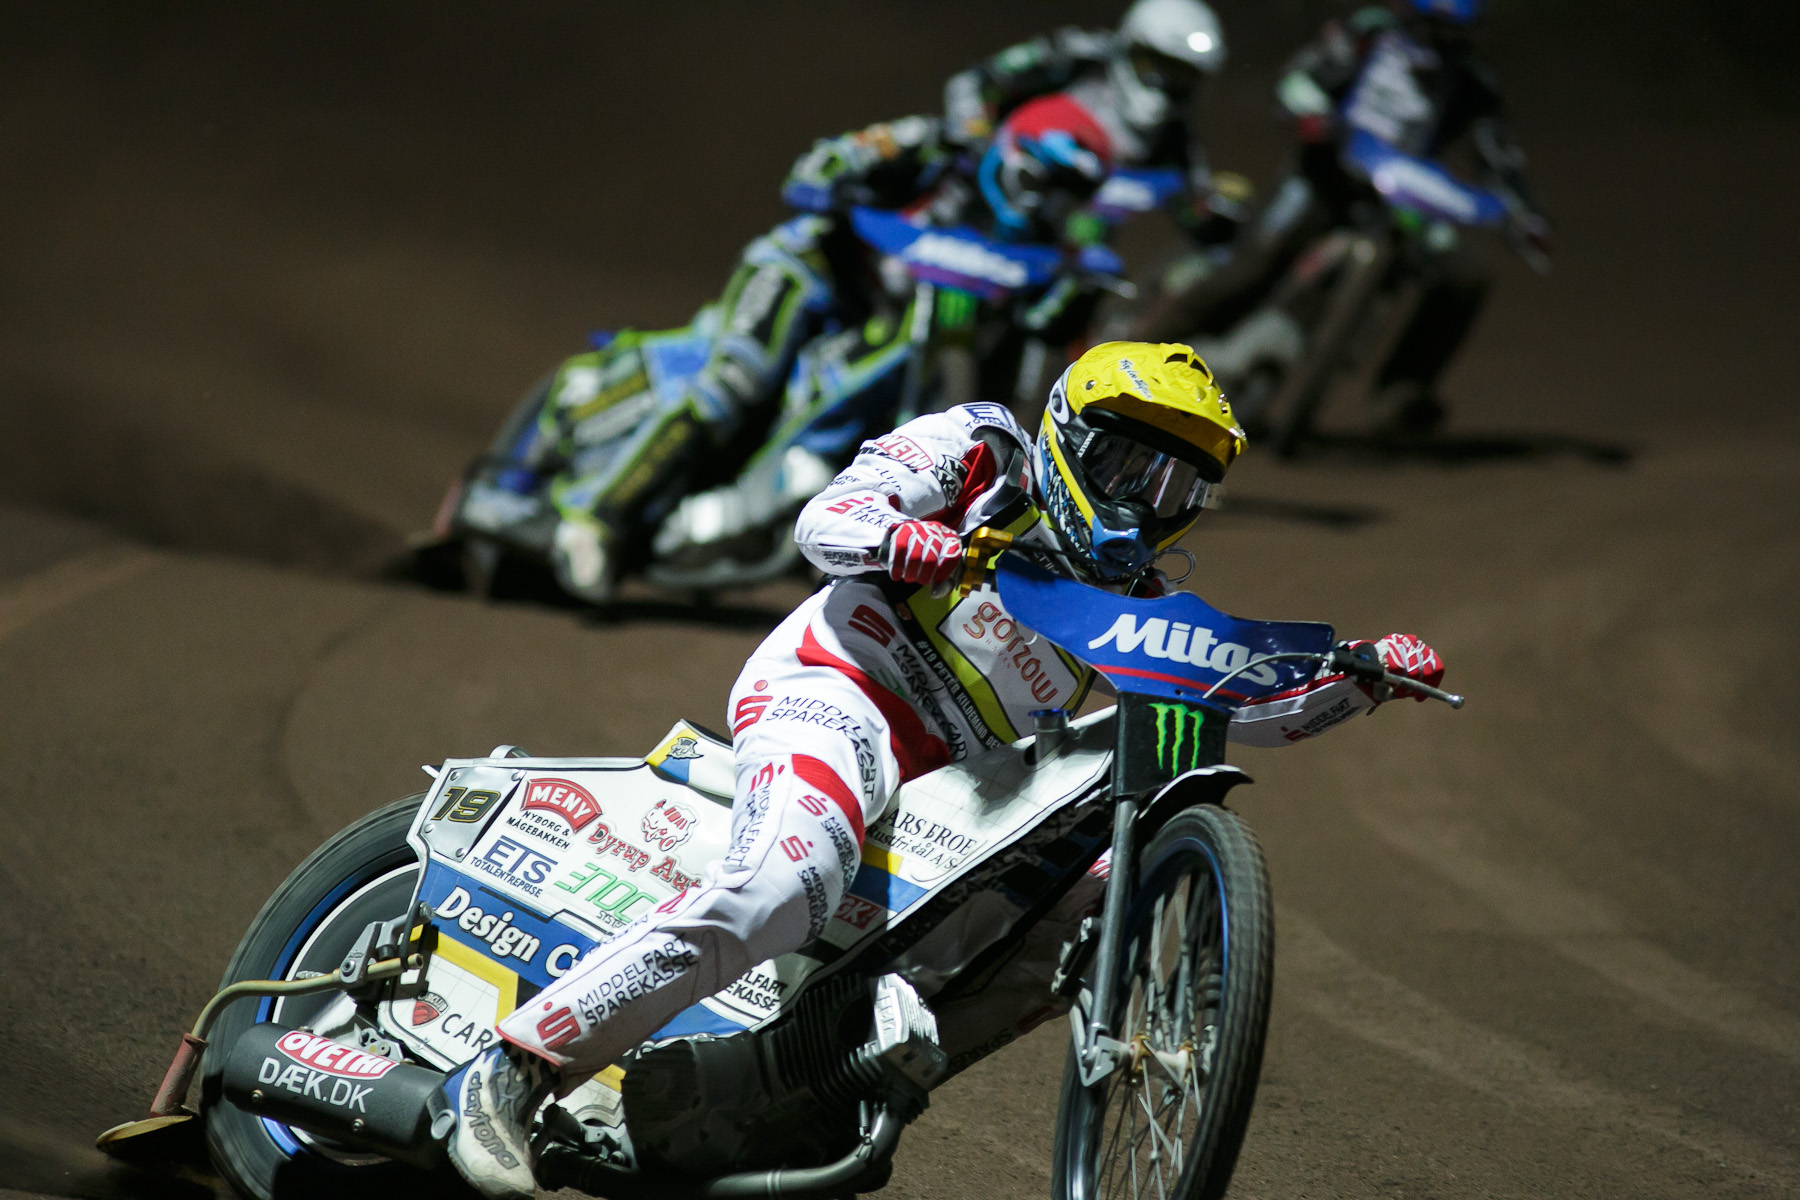 Peter Kildemand of Denmark competes in the Mitas Slovenian FIM Speedway Grand Prix at Matija Gubec Stadium in Krsko, Slovenia, Sep. 12, 2015.